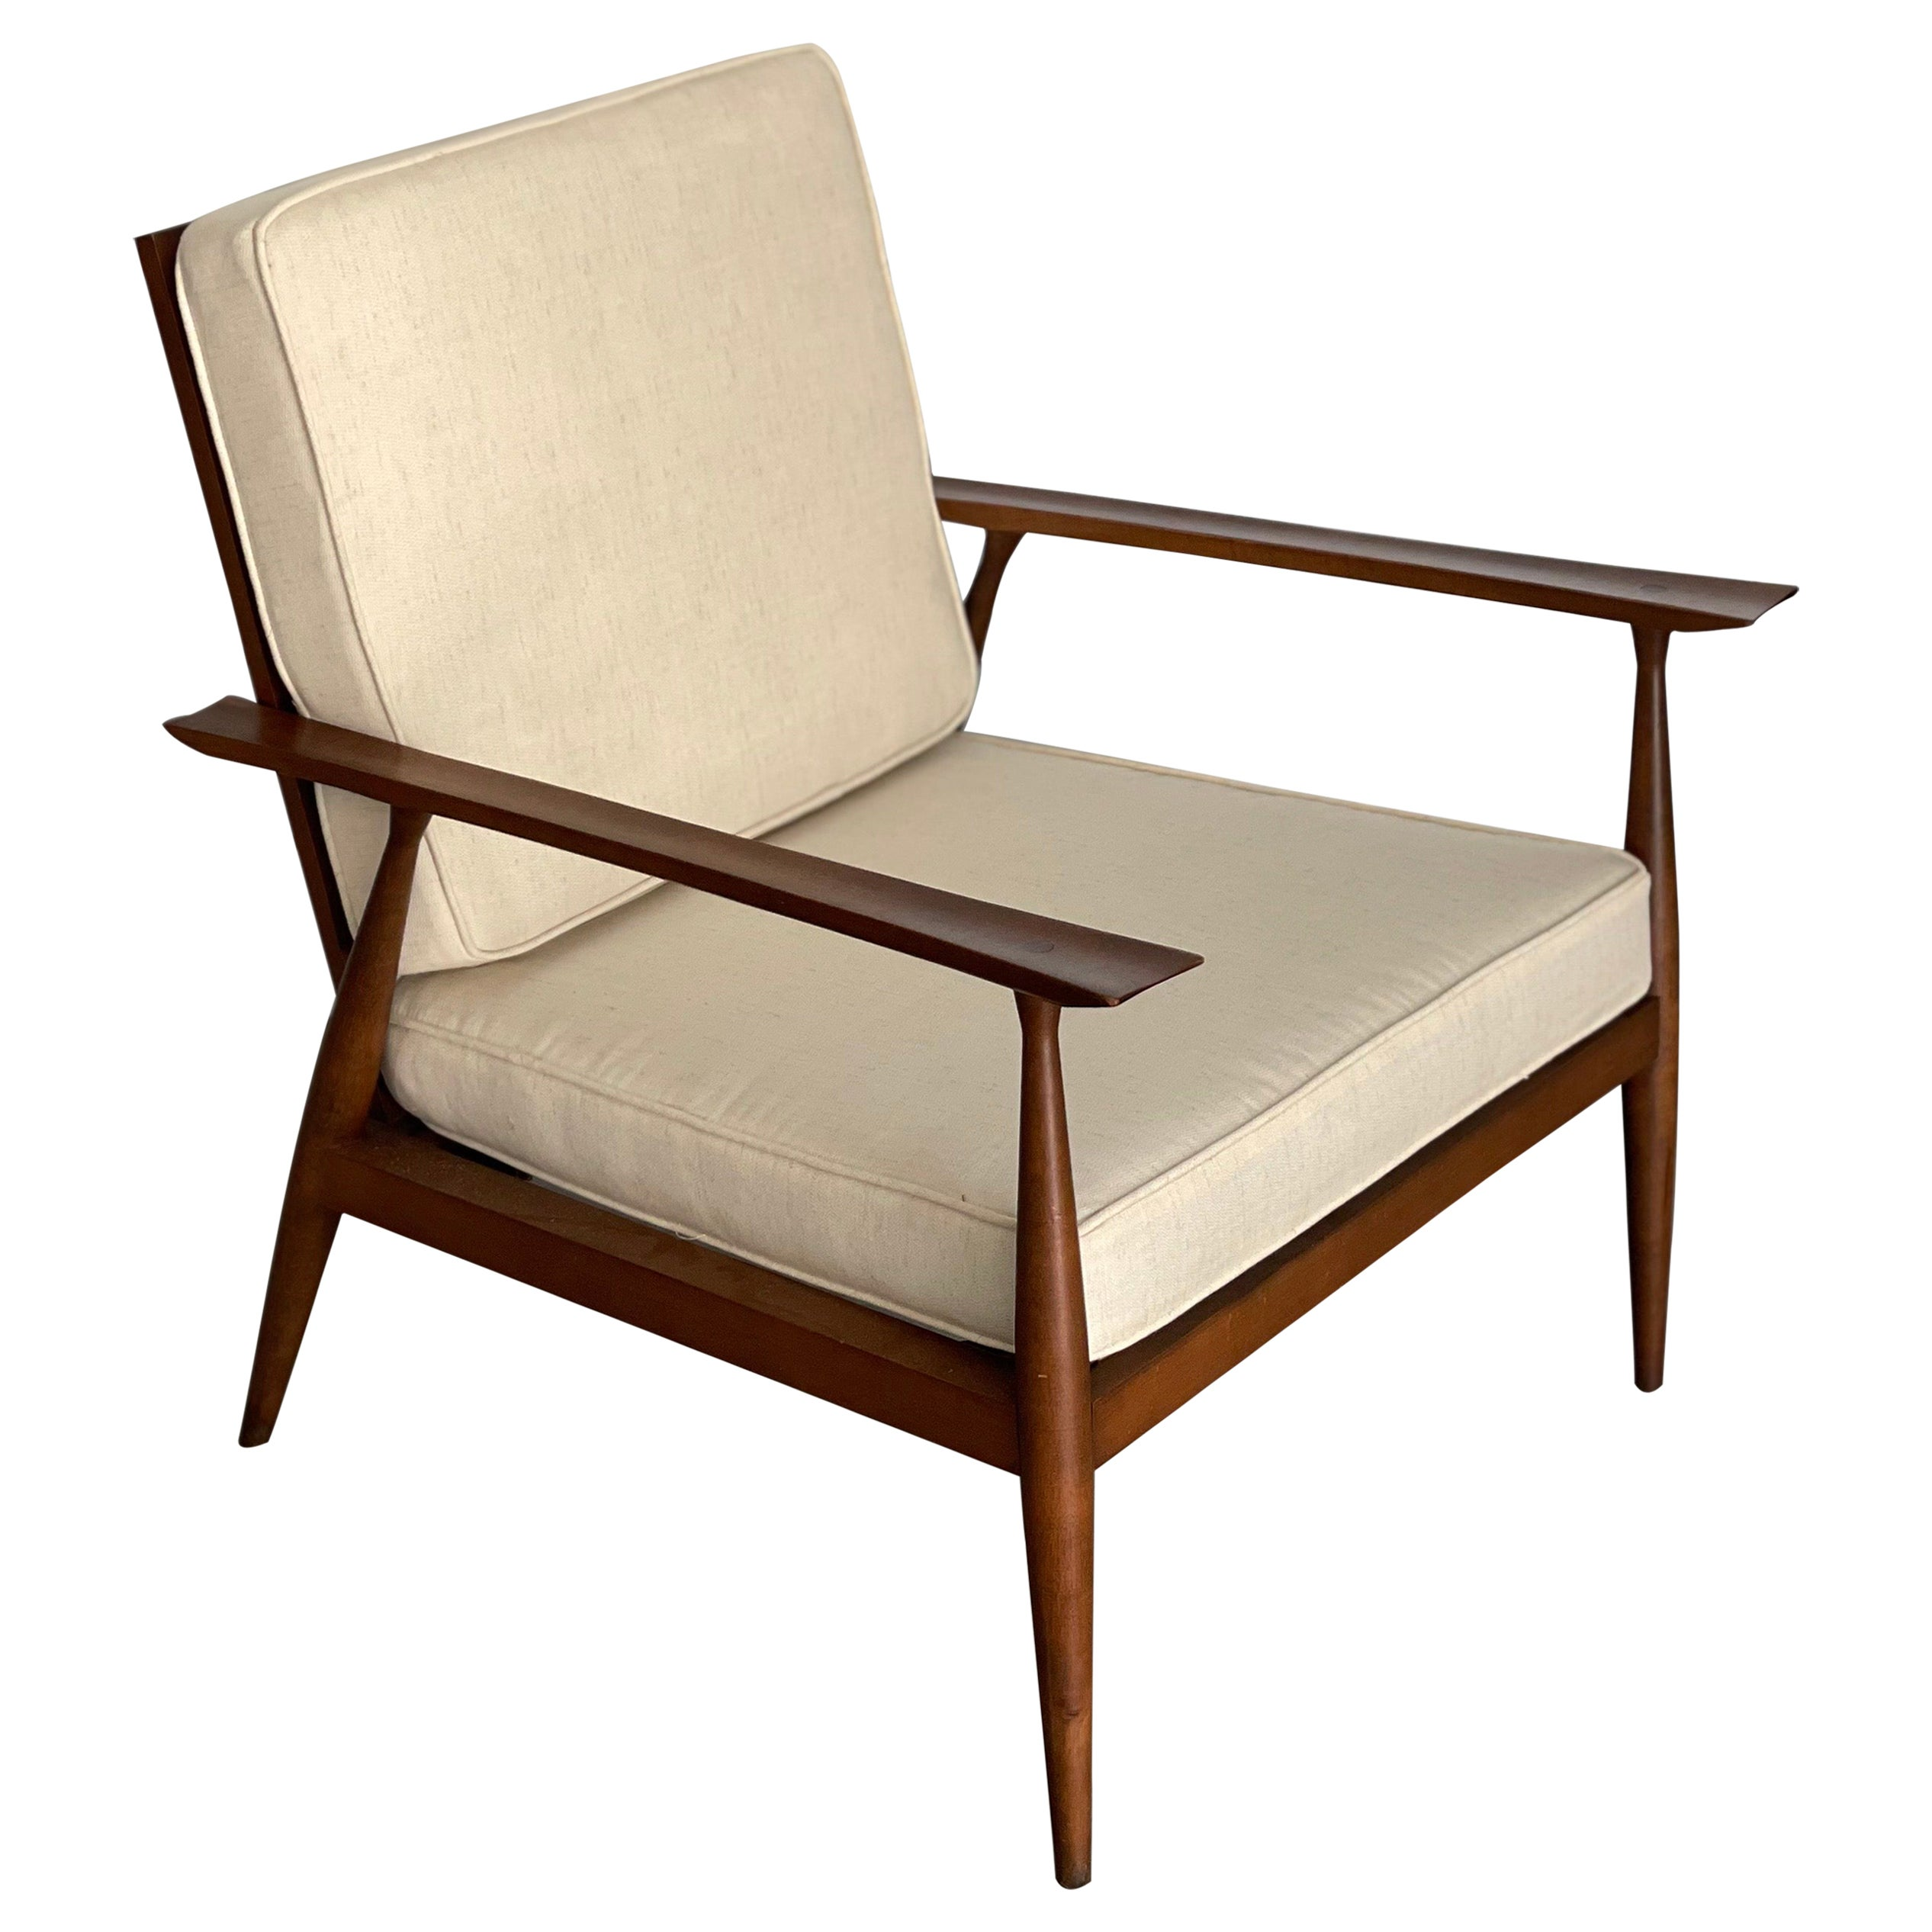 Rare Mid Century Modern Lounge Chair by Paul McCobb for Winchendon